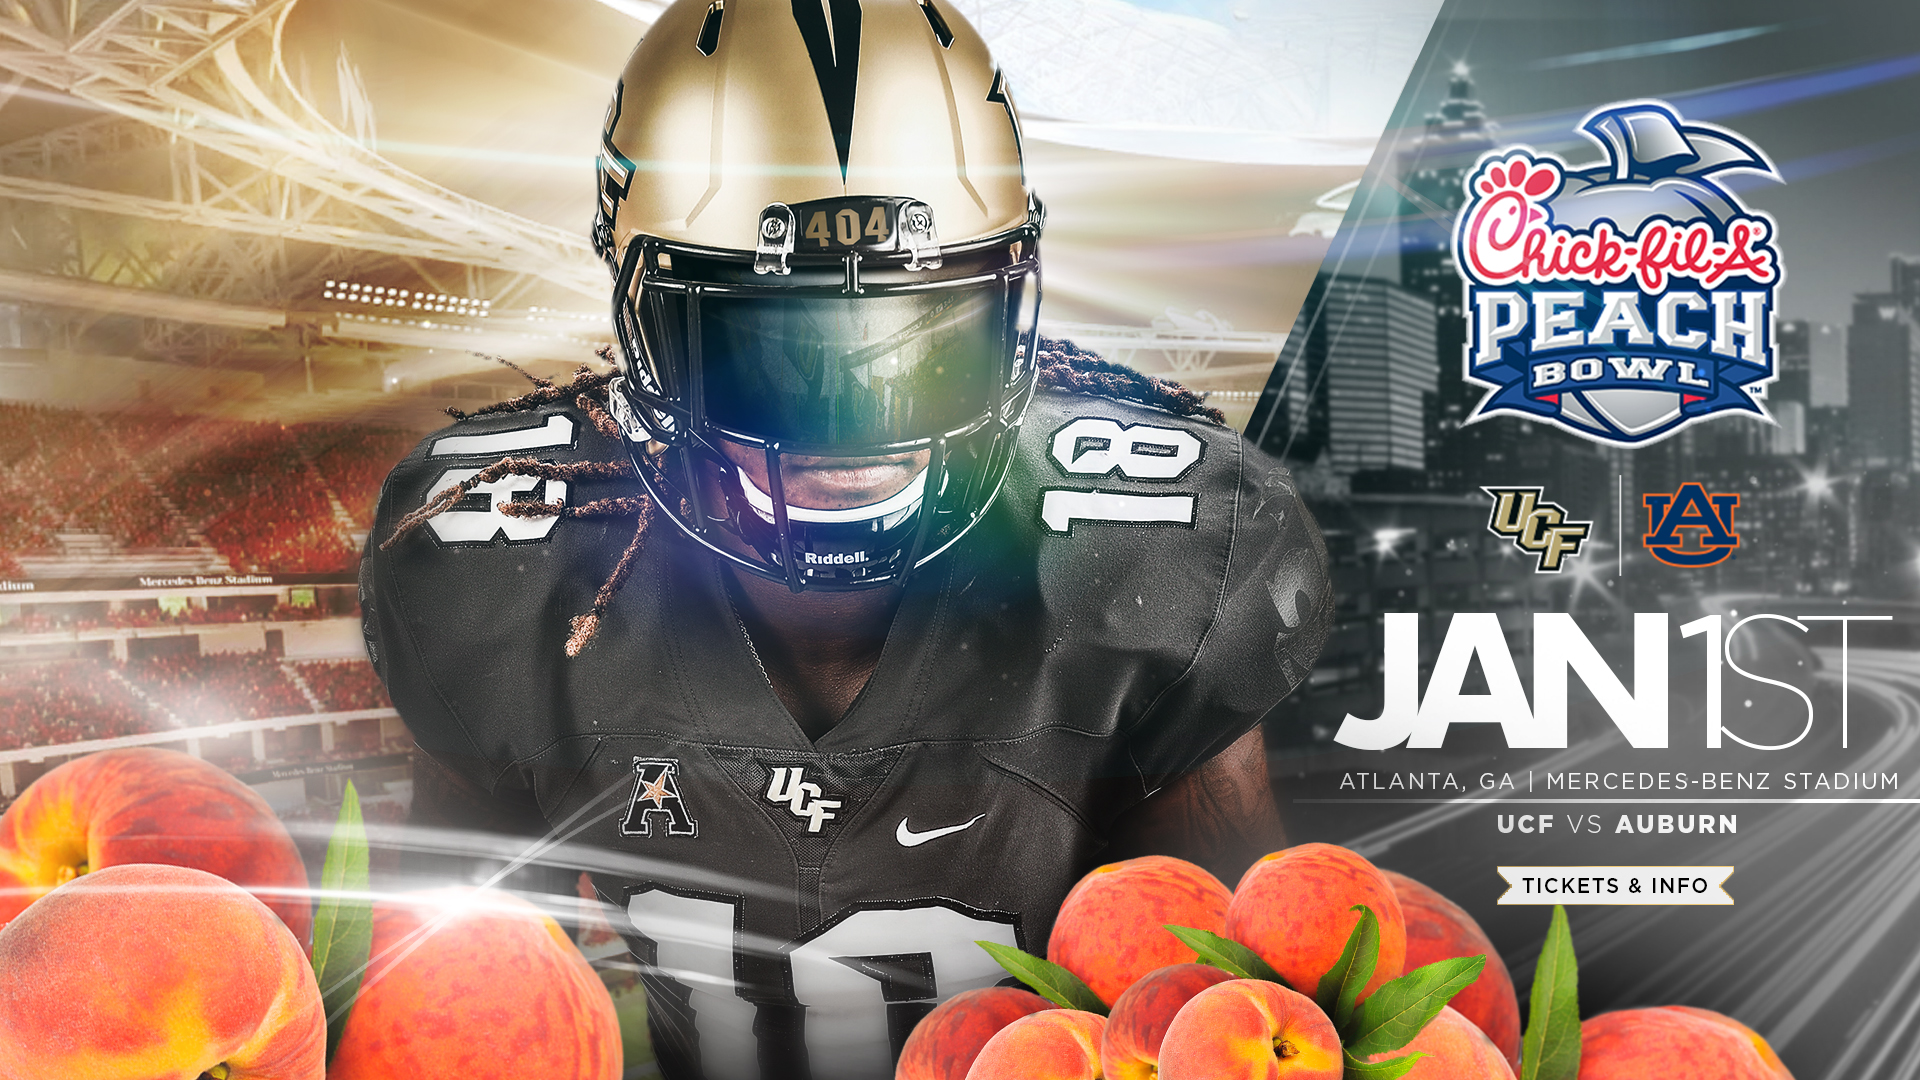 Everything You Need to Know About the Peach Bowl